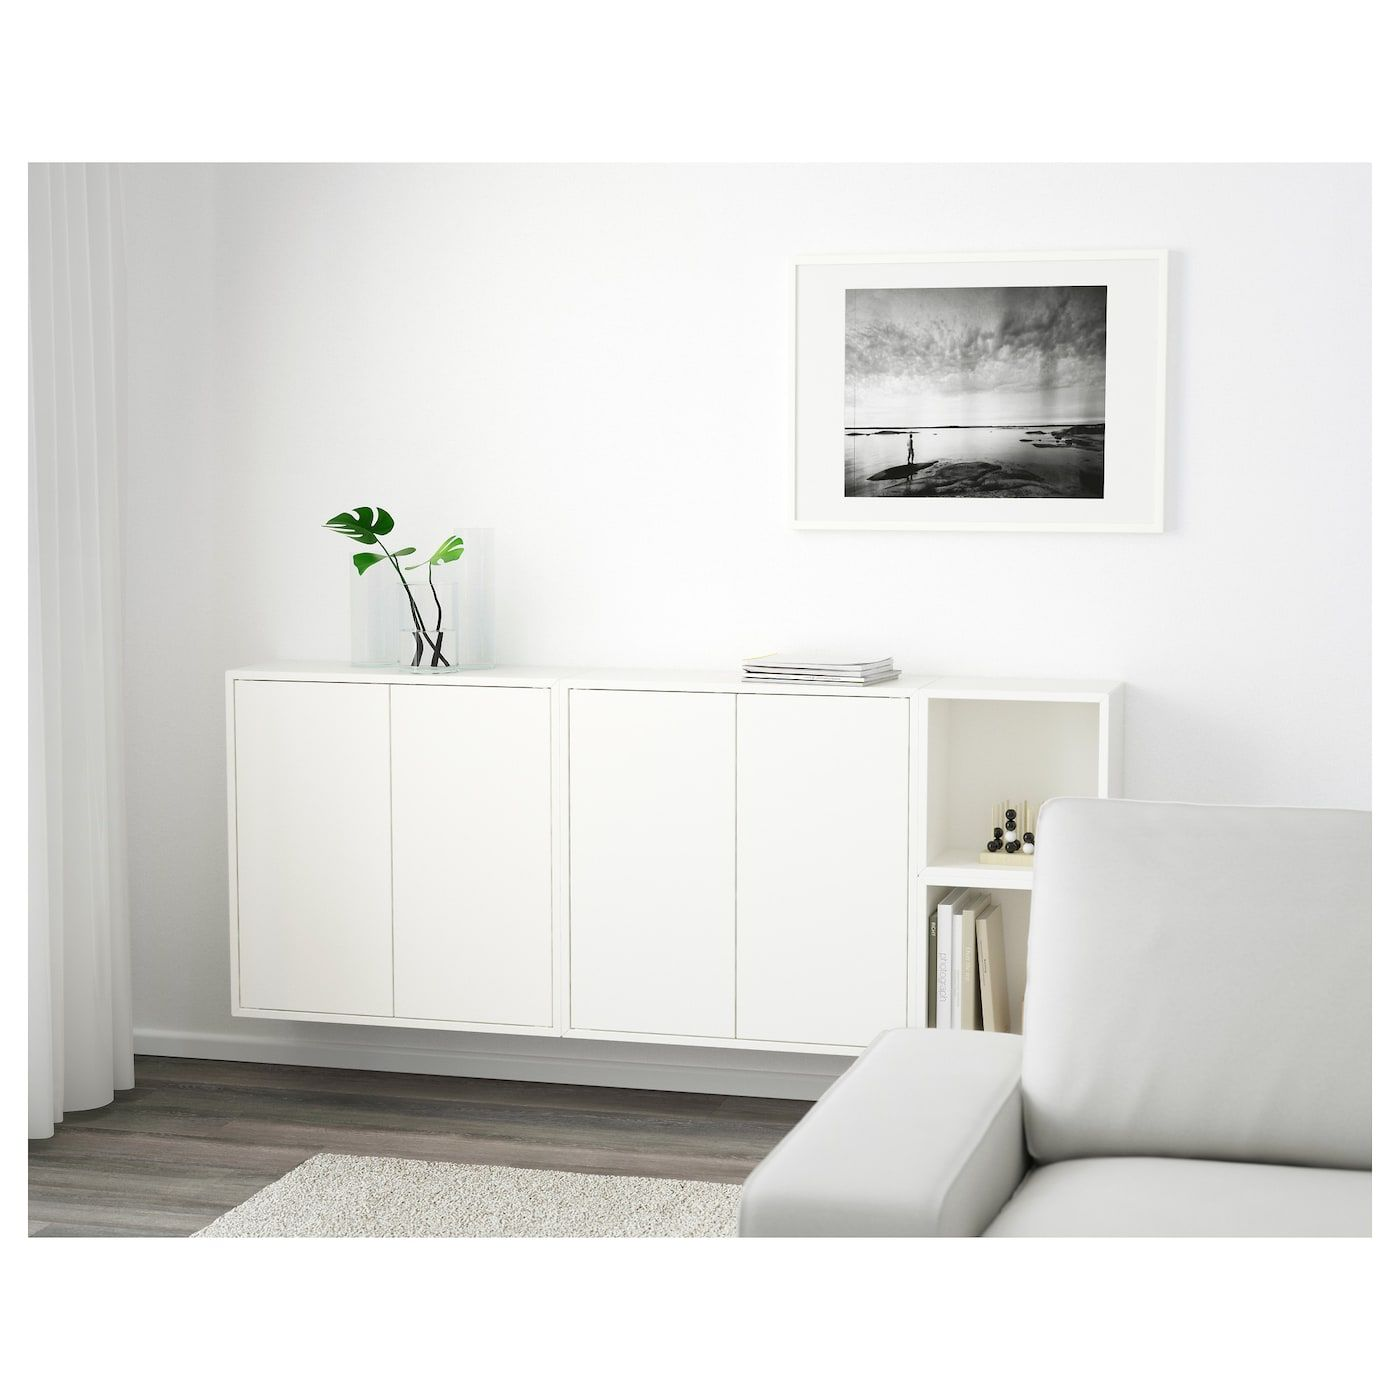 "EKET Wall-mounted cabinet combination, white, Length: 5 ½"". Find"